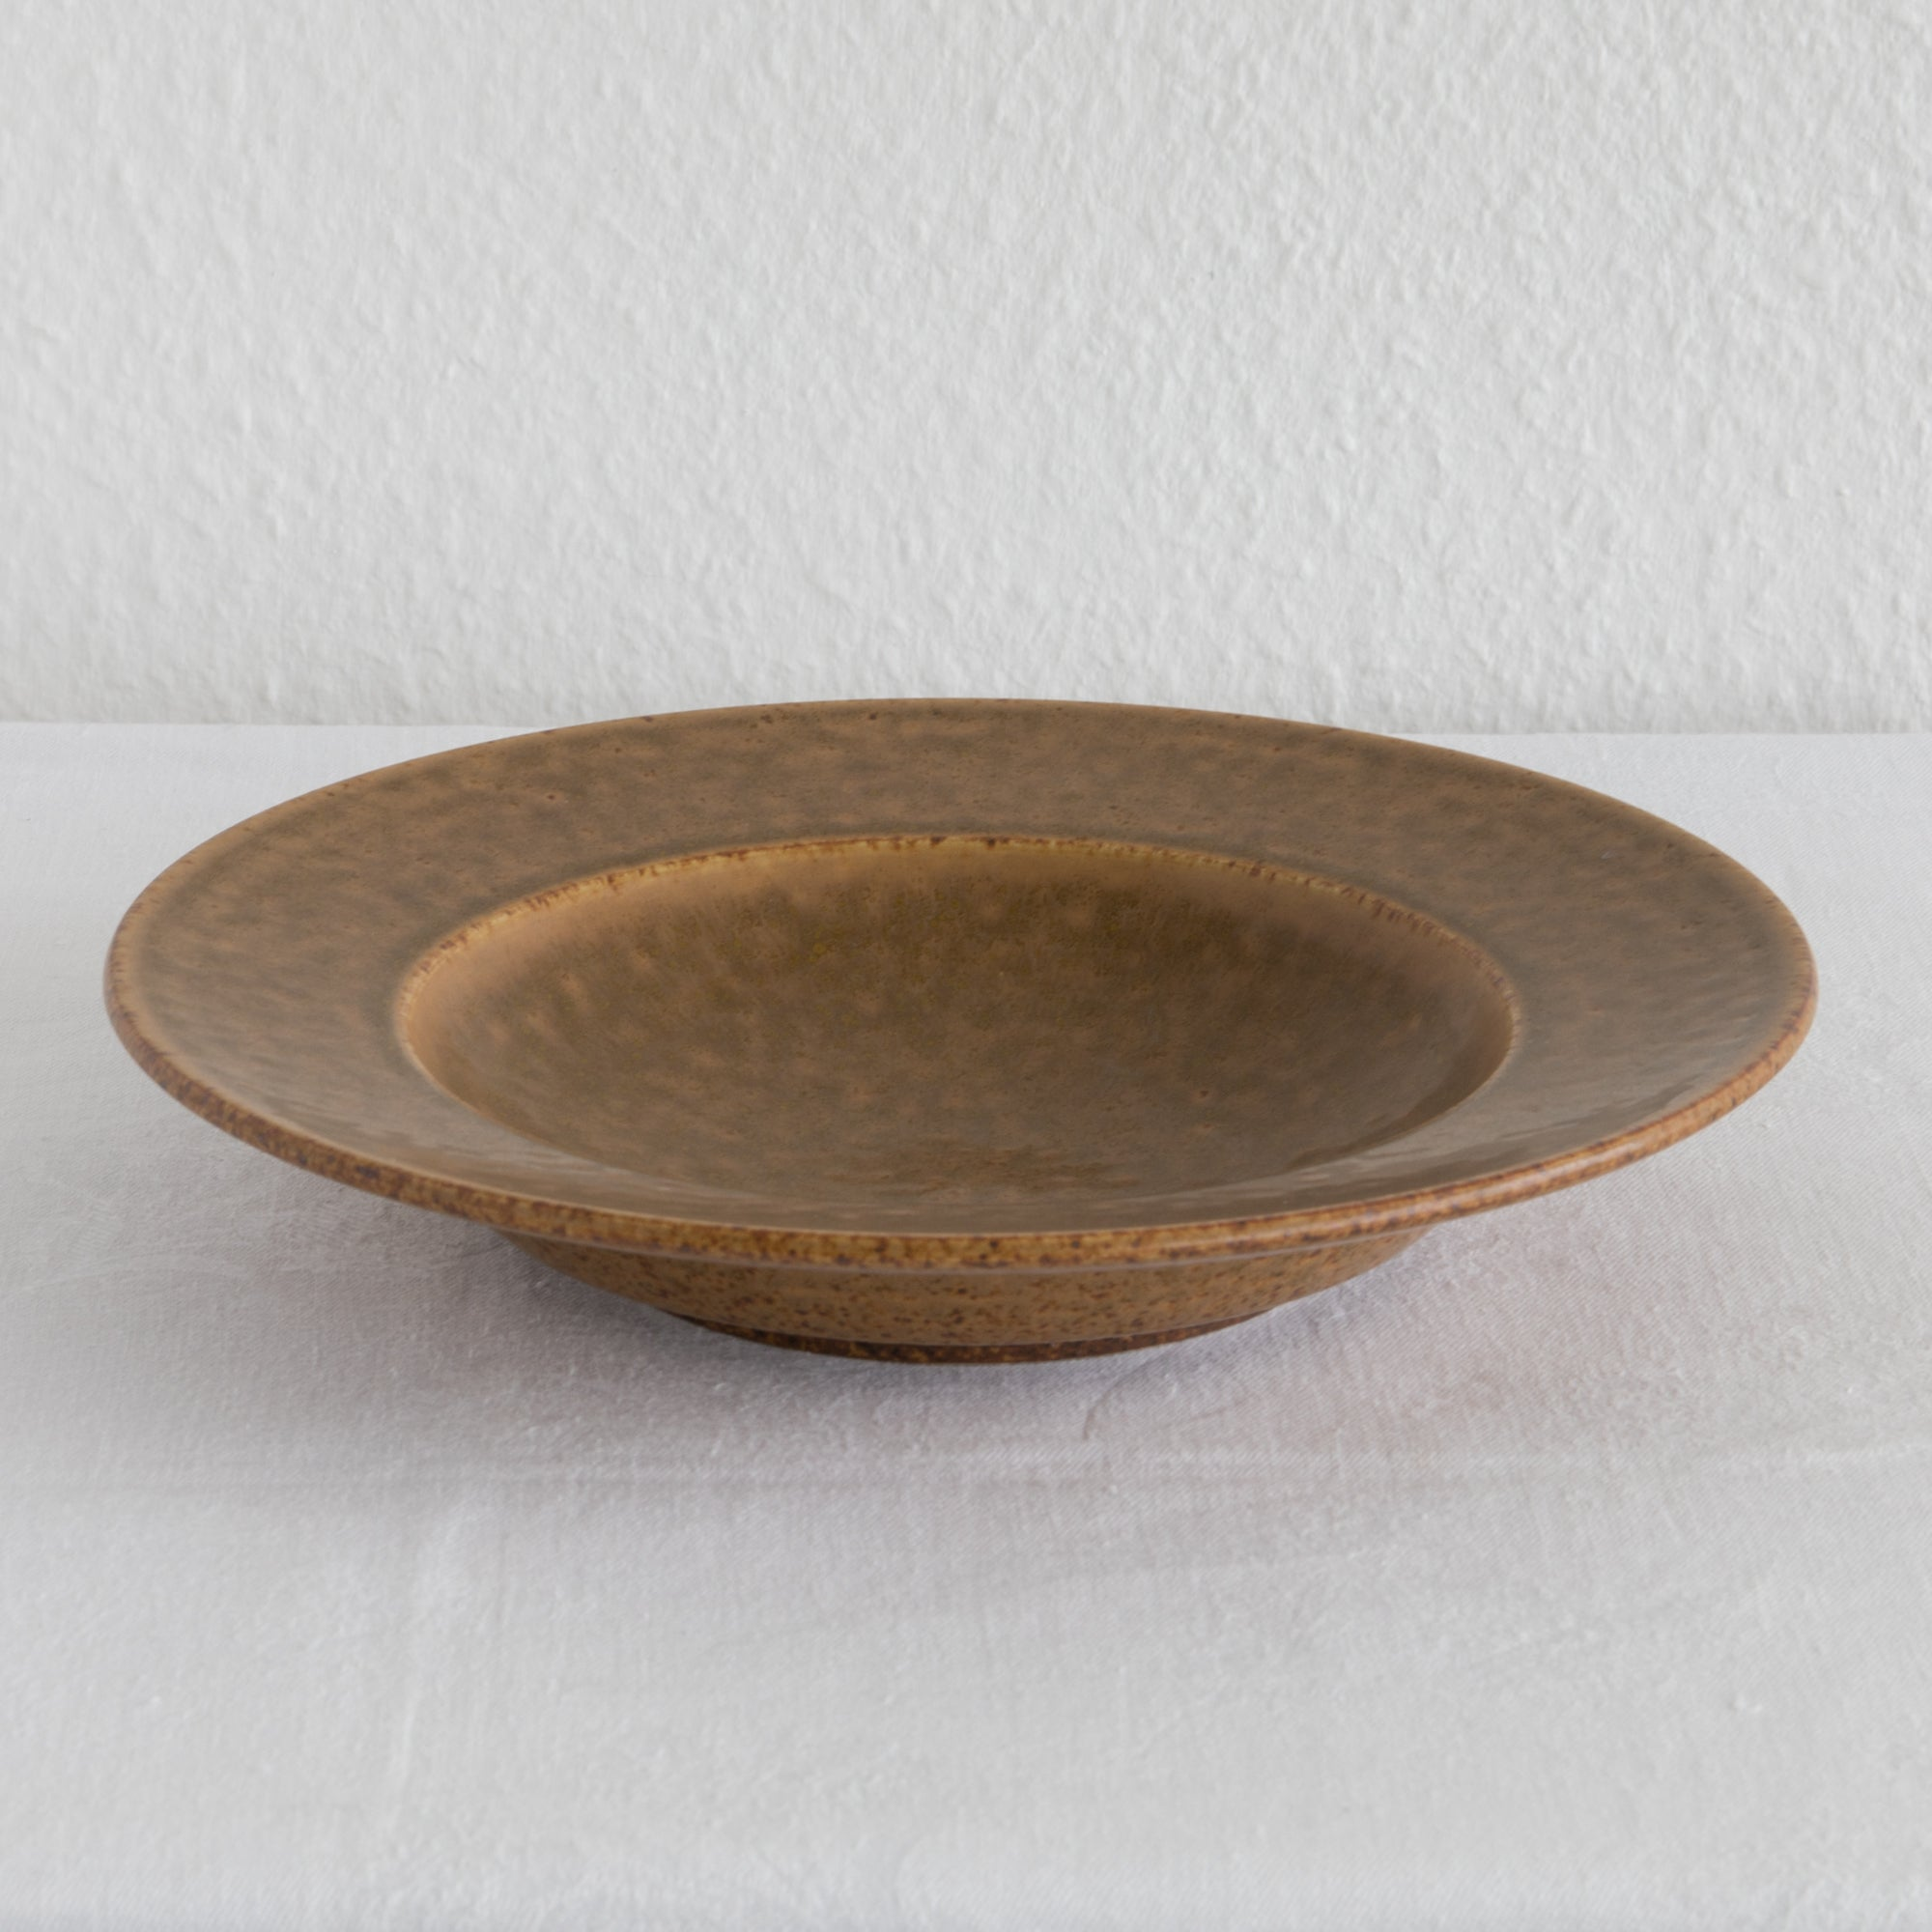 PER LINNEMANN SCHMIDT Palshus Unique Caramel Brown Speckled Glazed Stoneware Bowl - Mollaris.com